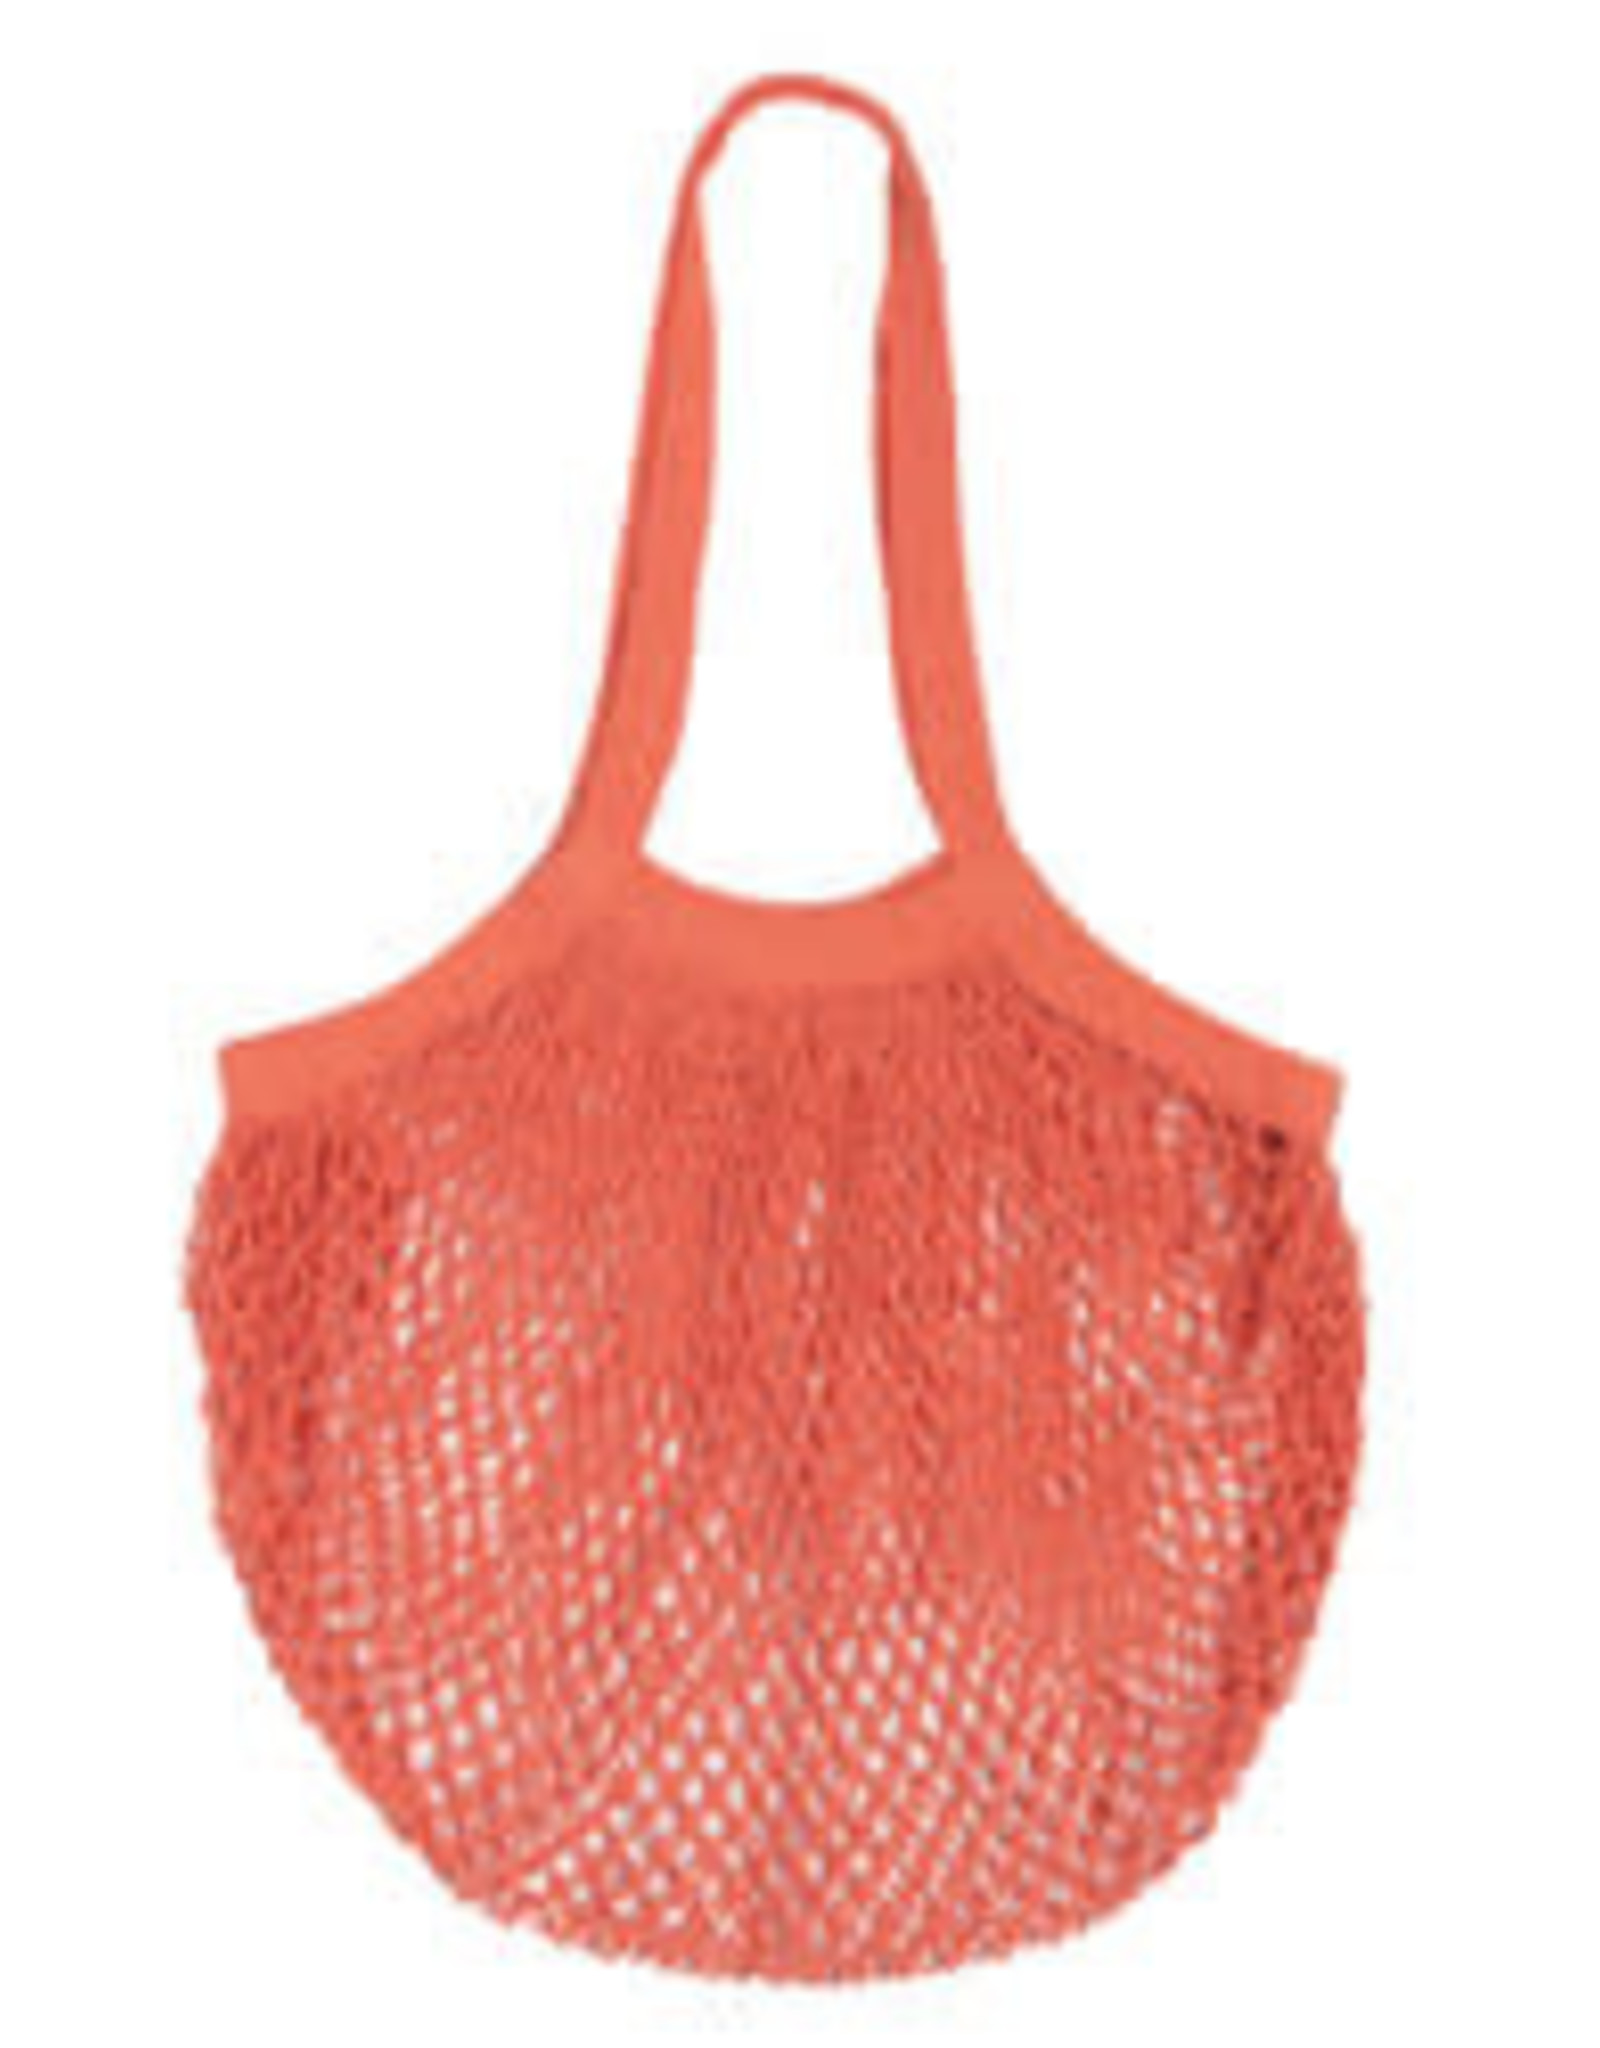 NOW DESIGNS BAG SHOPPING NET MESH CORAL PINK